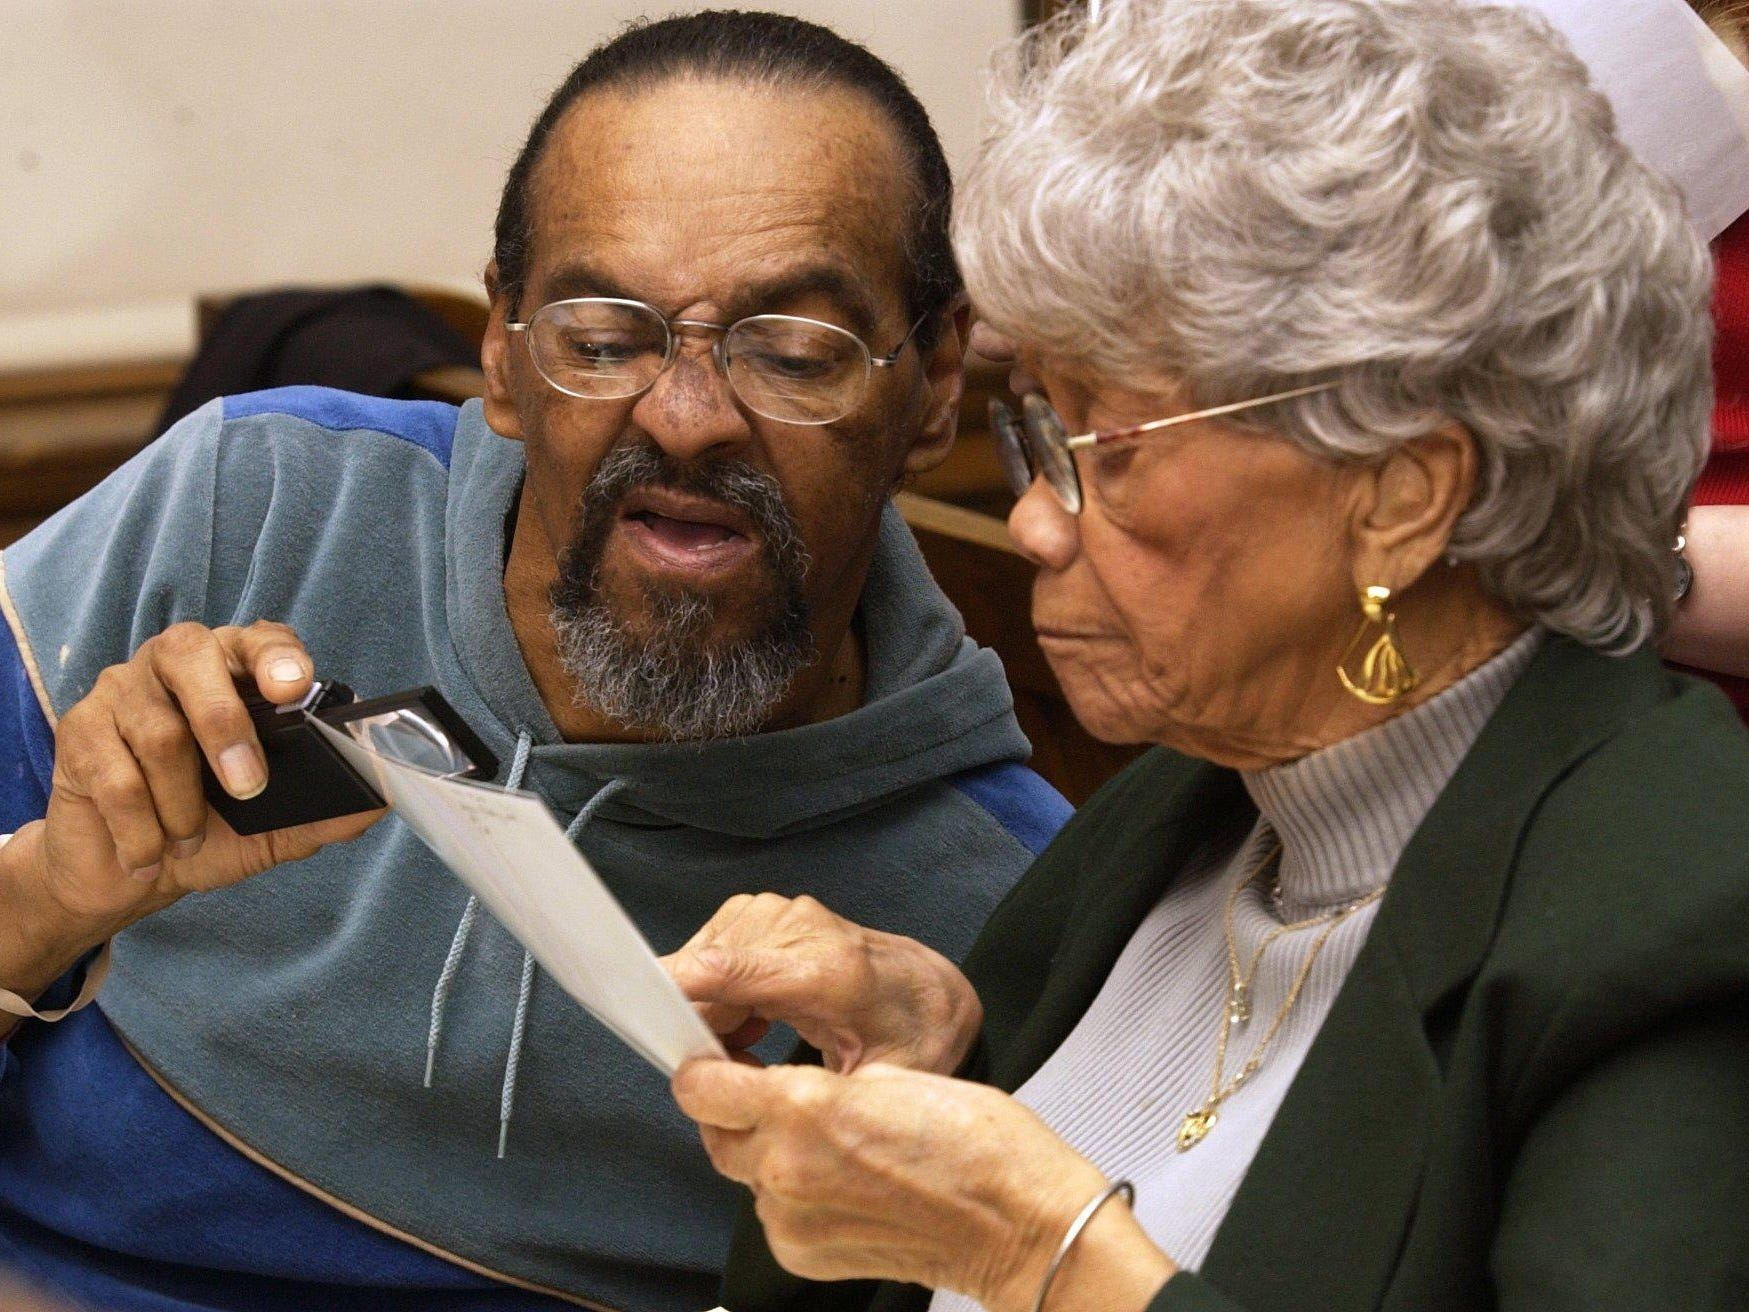 Denny Whayne, left, and Lea Etta McAdams carefully look over old photos as they try to identify people and places in 2006.